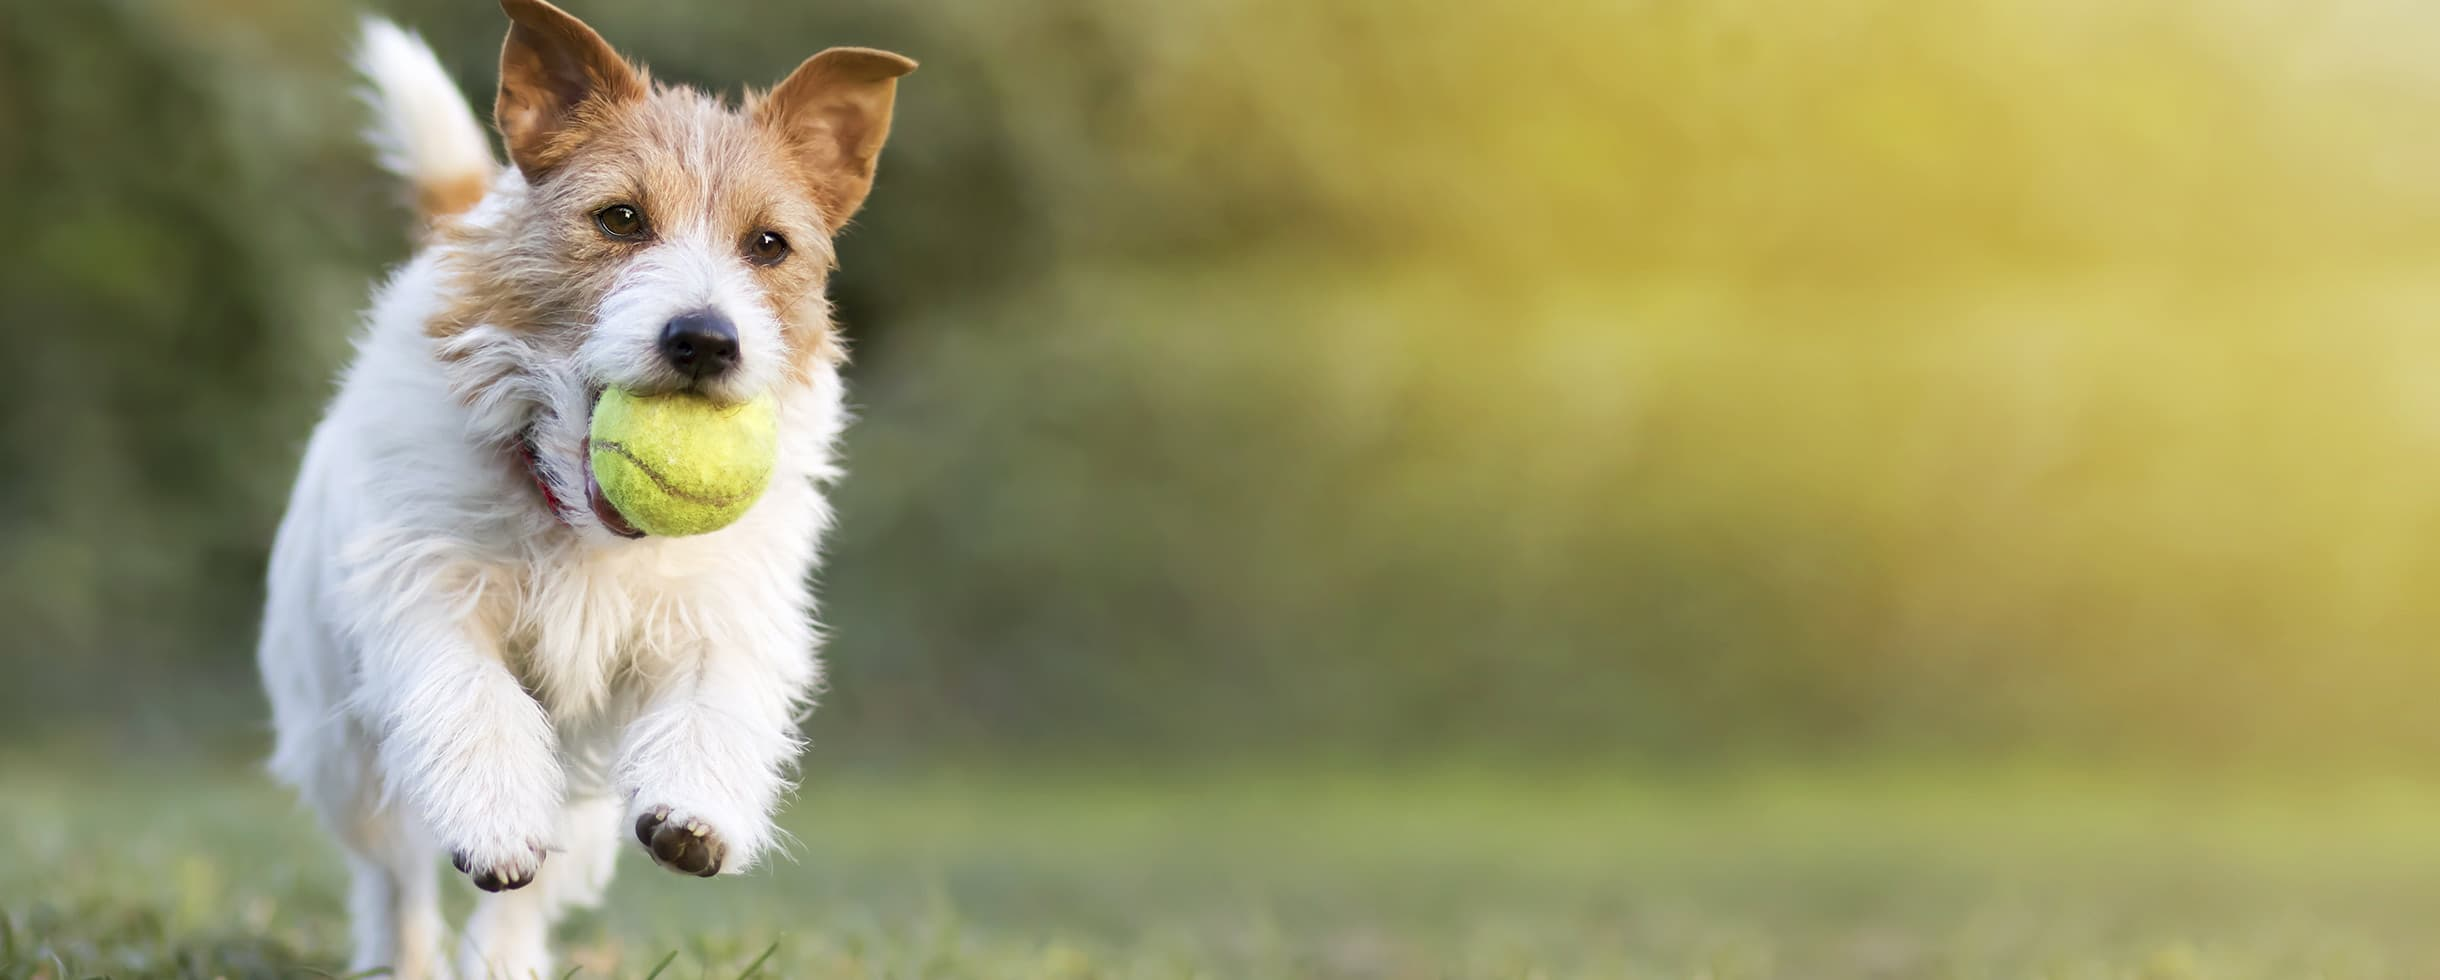 playful dog with a tennis ball in his mouth while running